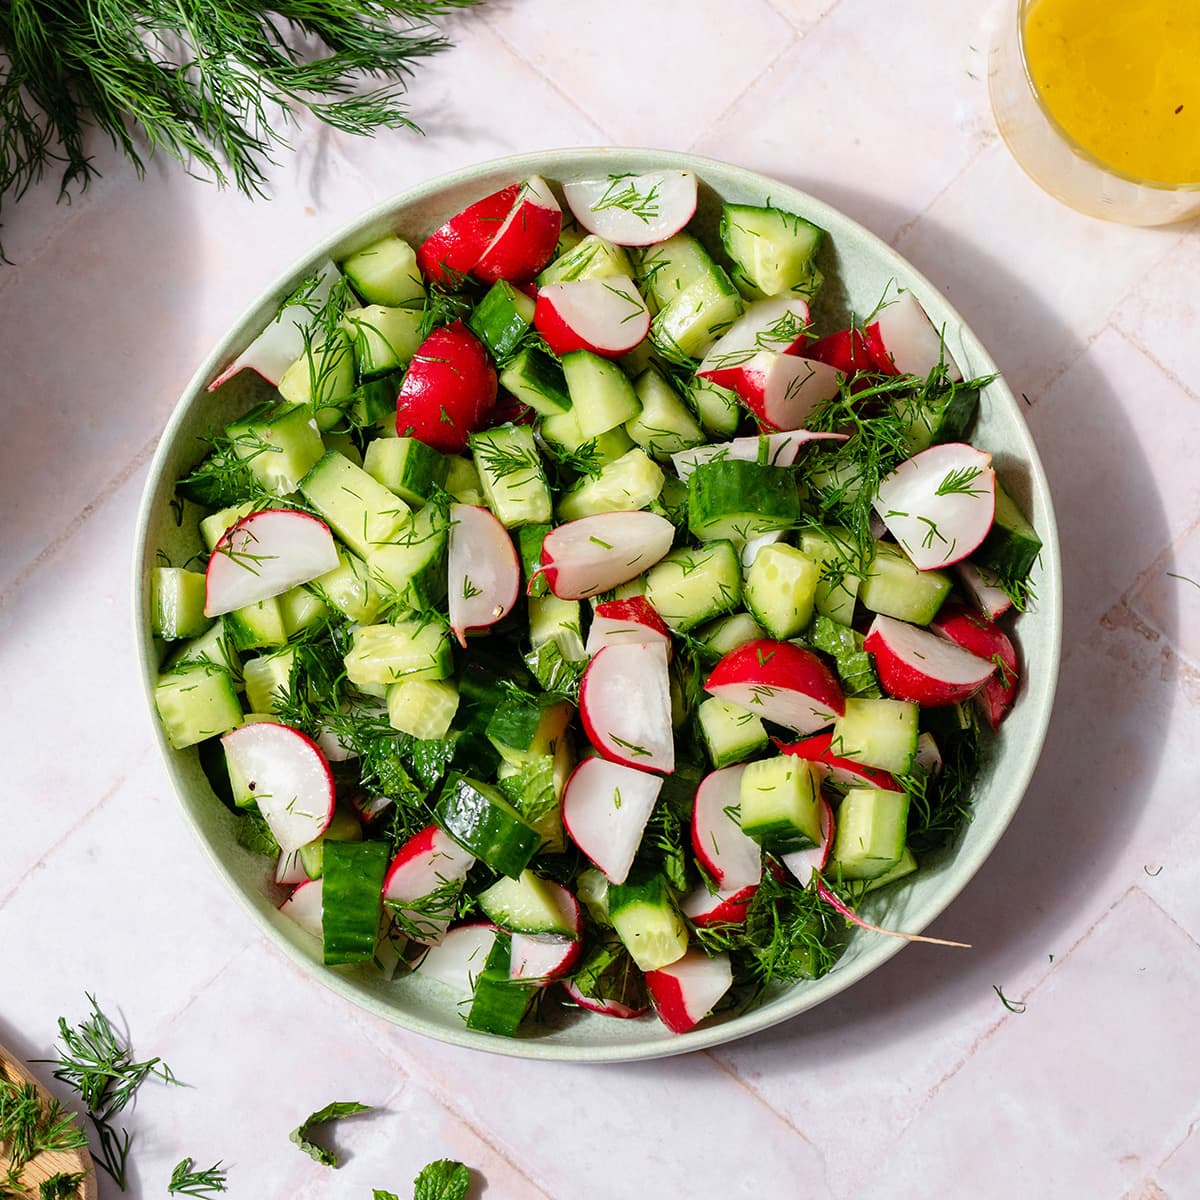 Cucumber Radish Salad in a shallow bowl on a light pink tile background. A bunch of fresh dill on the left side of the plate and the lemon vinaigrette on the right side of it.